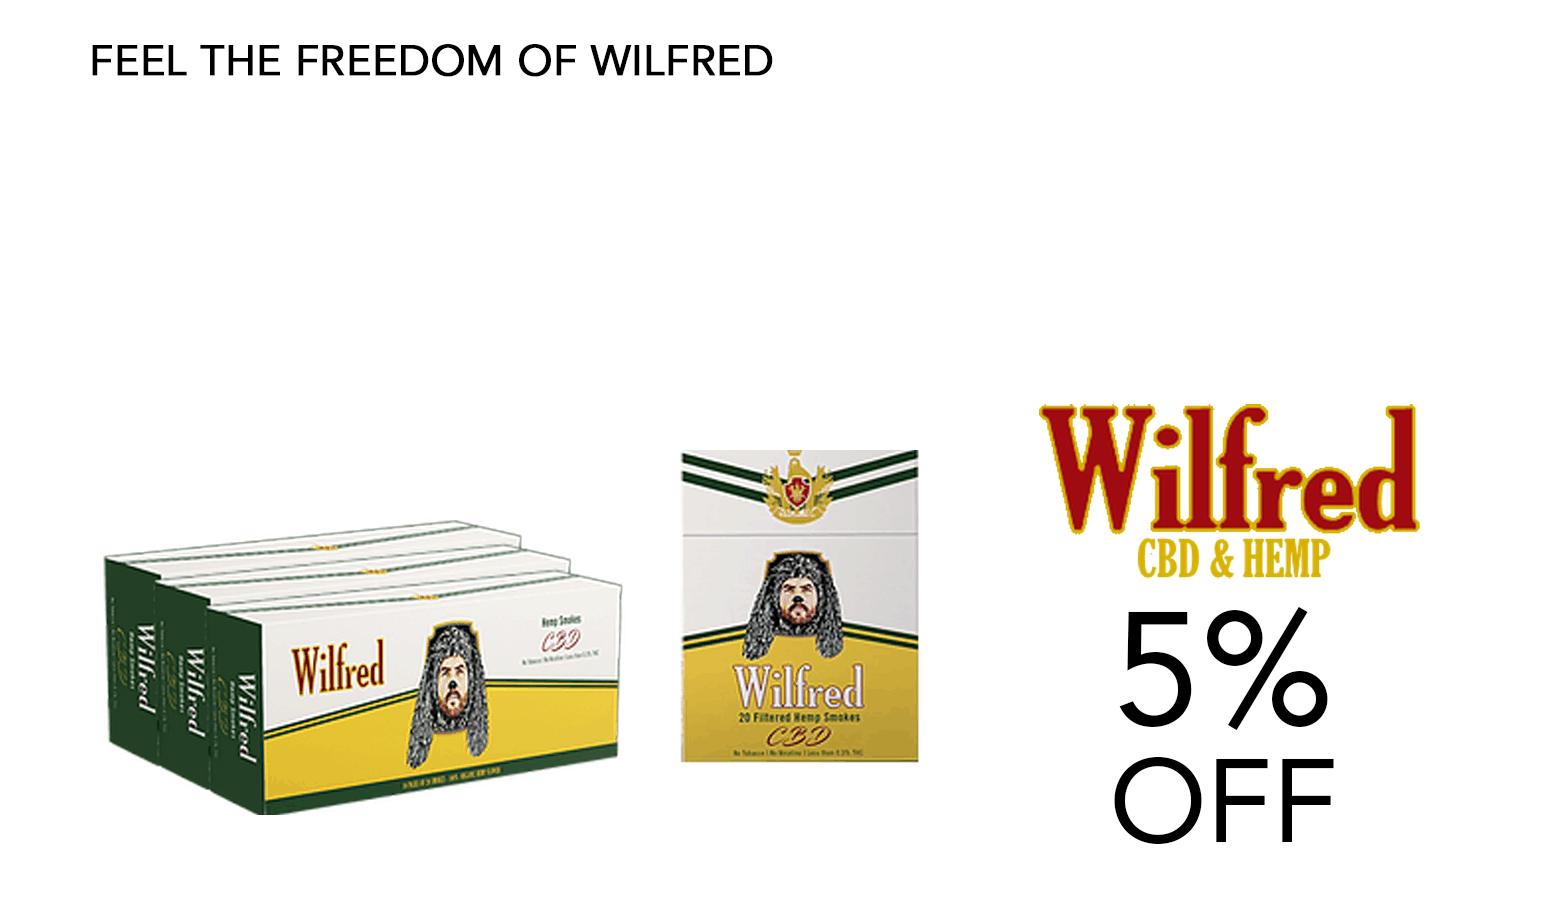 Wilfred CBD Coupon Code 5 Percent Offer Website